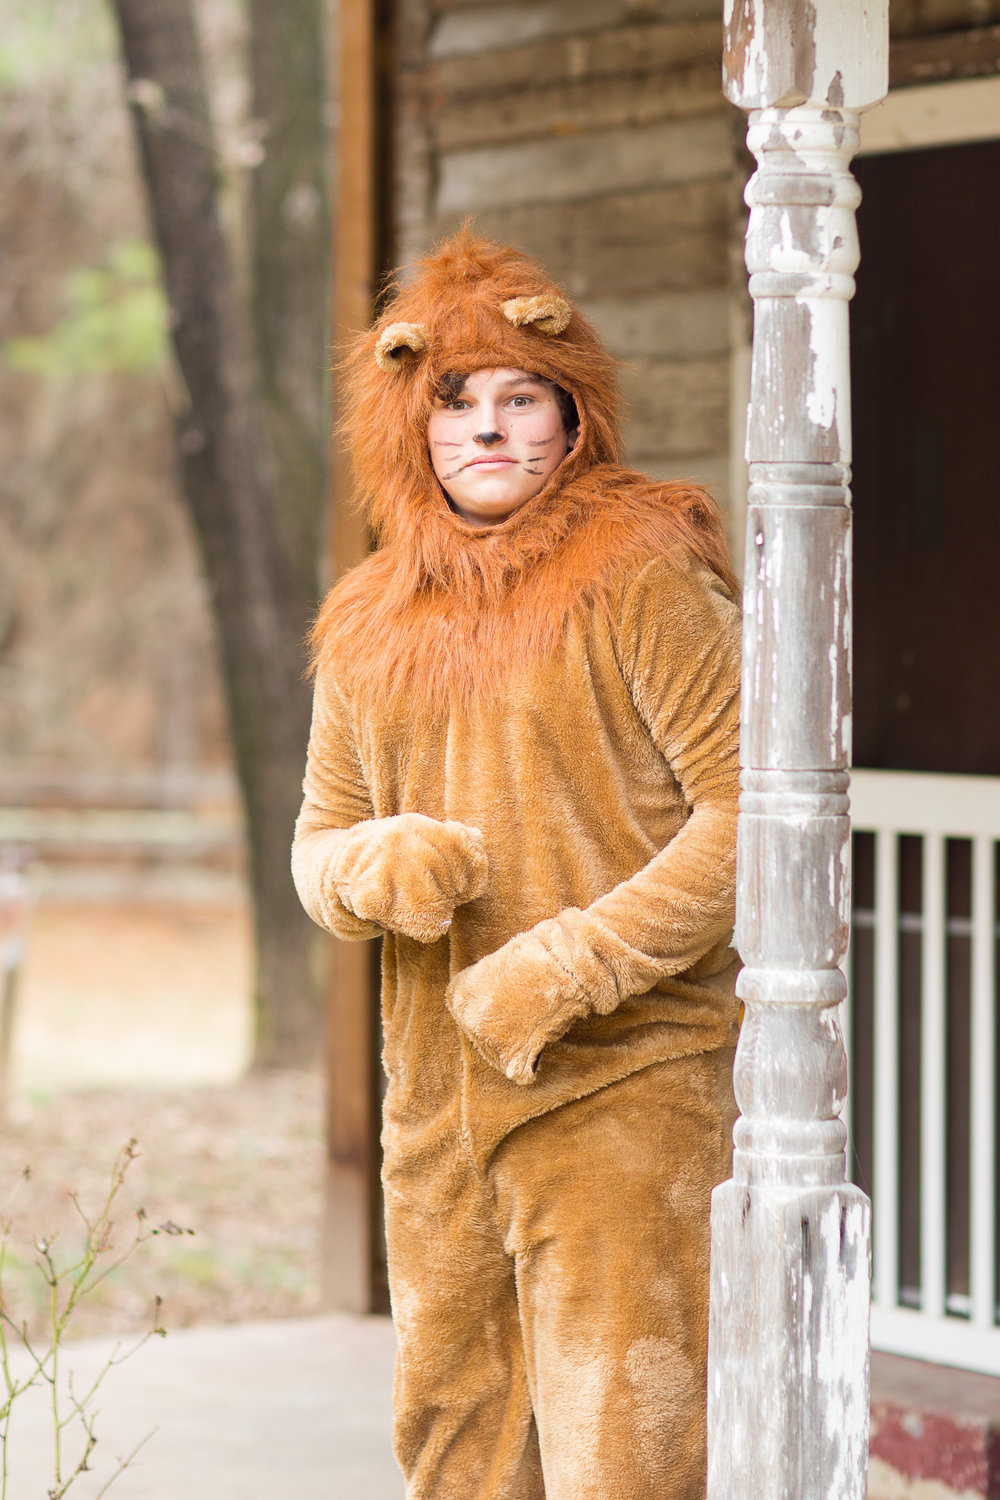 Cole Larsen as the Cowardly Lion